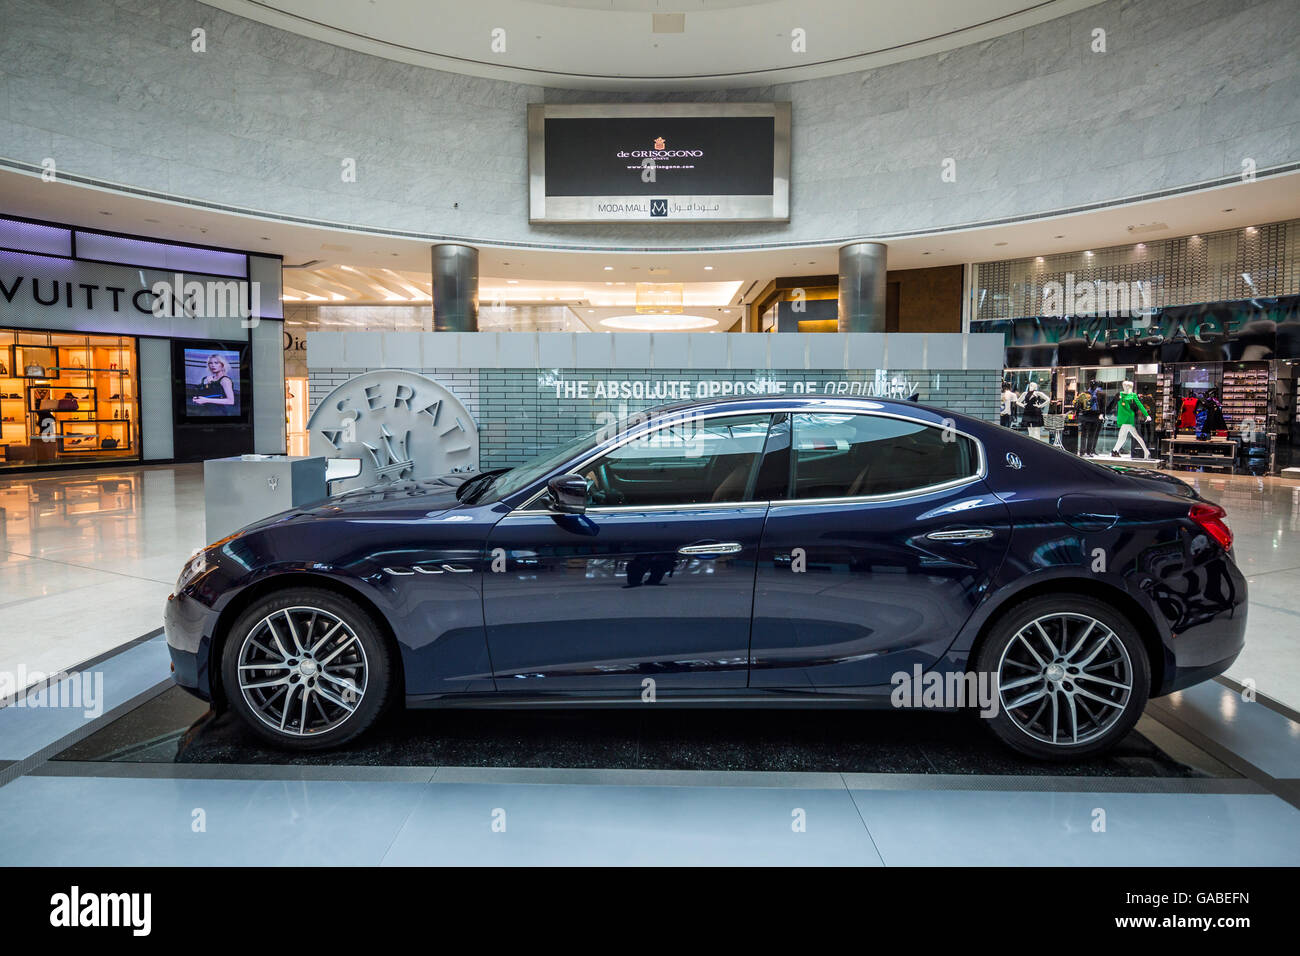 Maserati Ghibli, MODA Mall, Bahrain World Trade Center, Manama, Bahrain. Immagini Stock